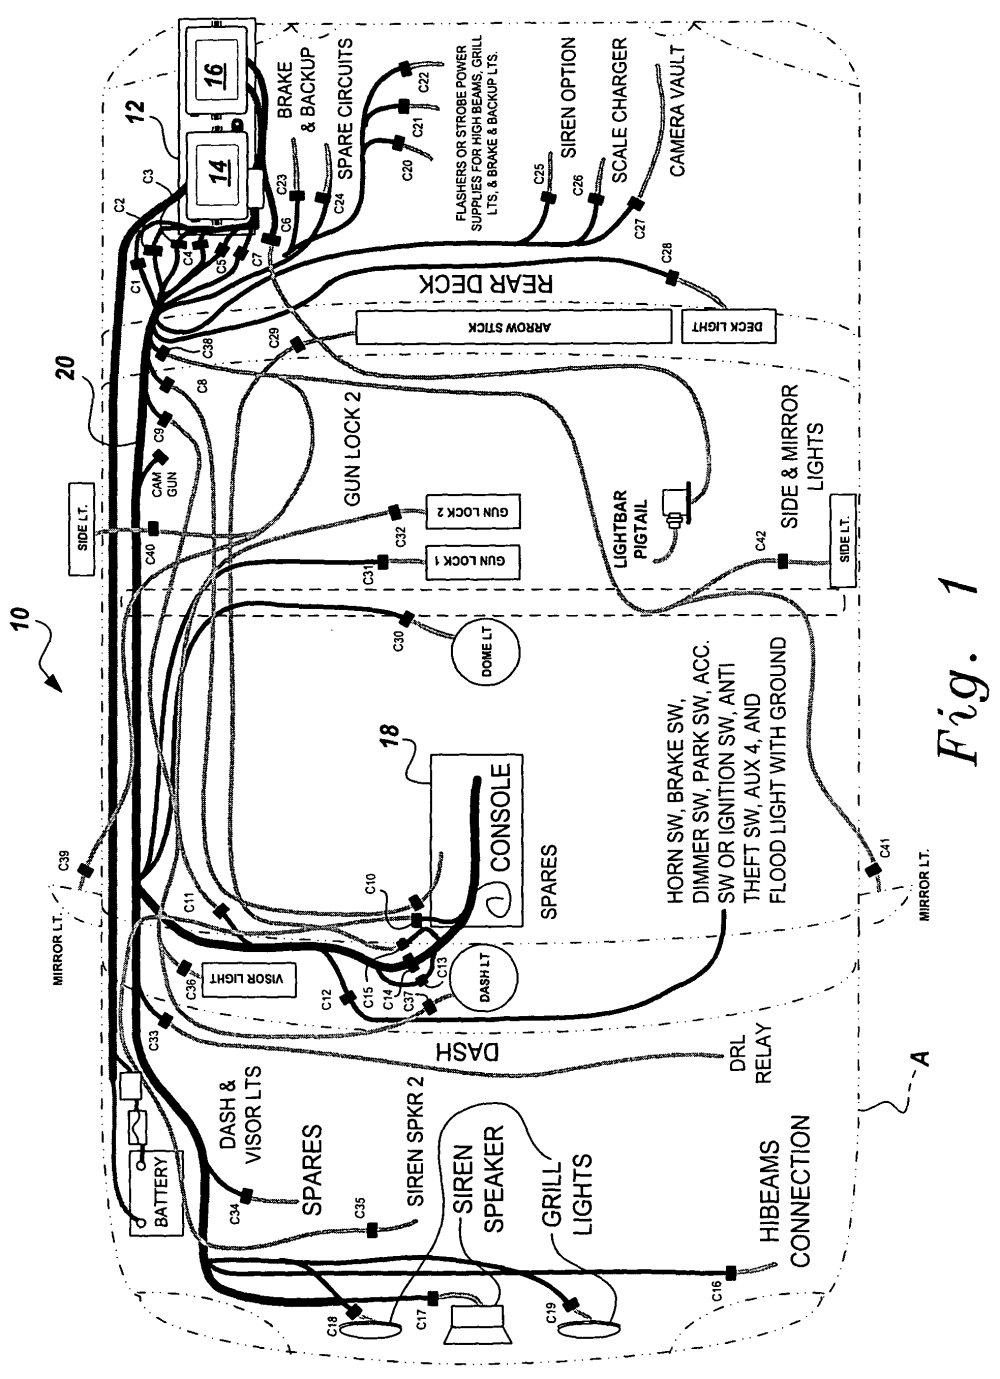 medium resolution of c 15 cat engine diagram wiring library cat 3126 parts cat engine diagram